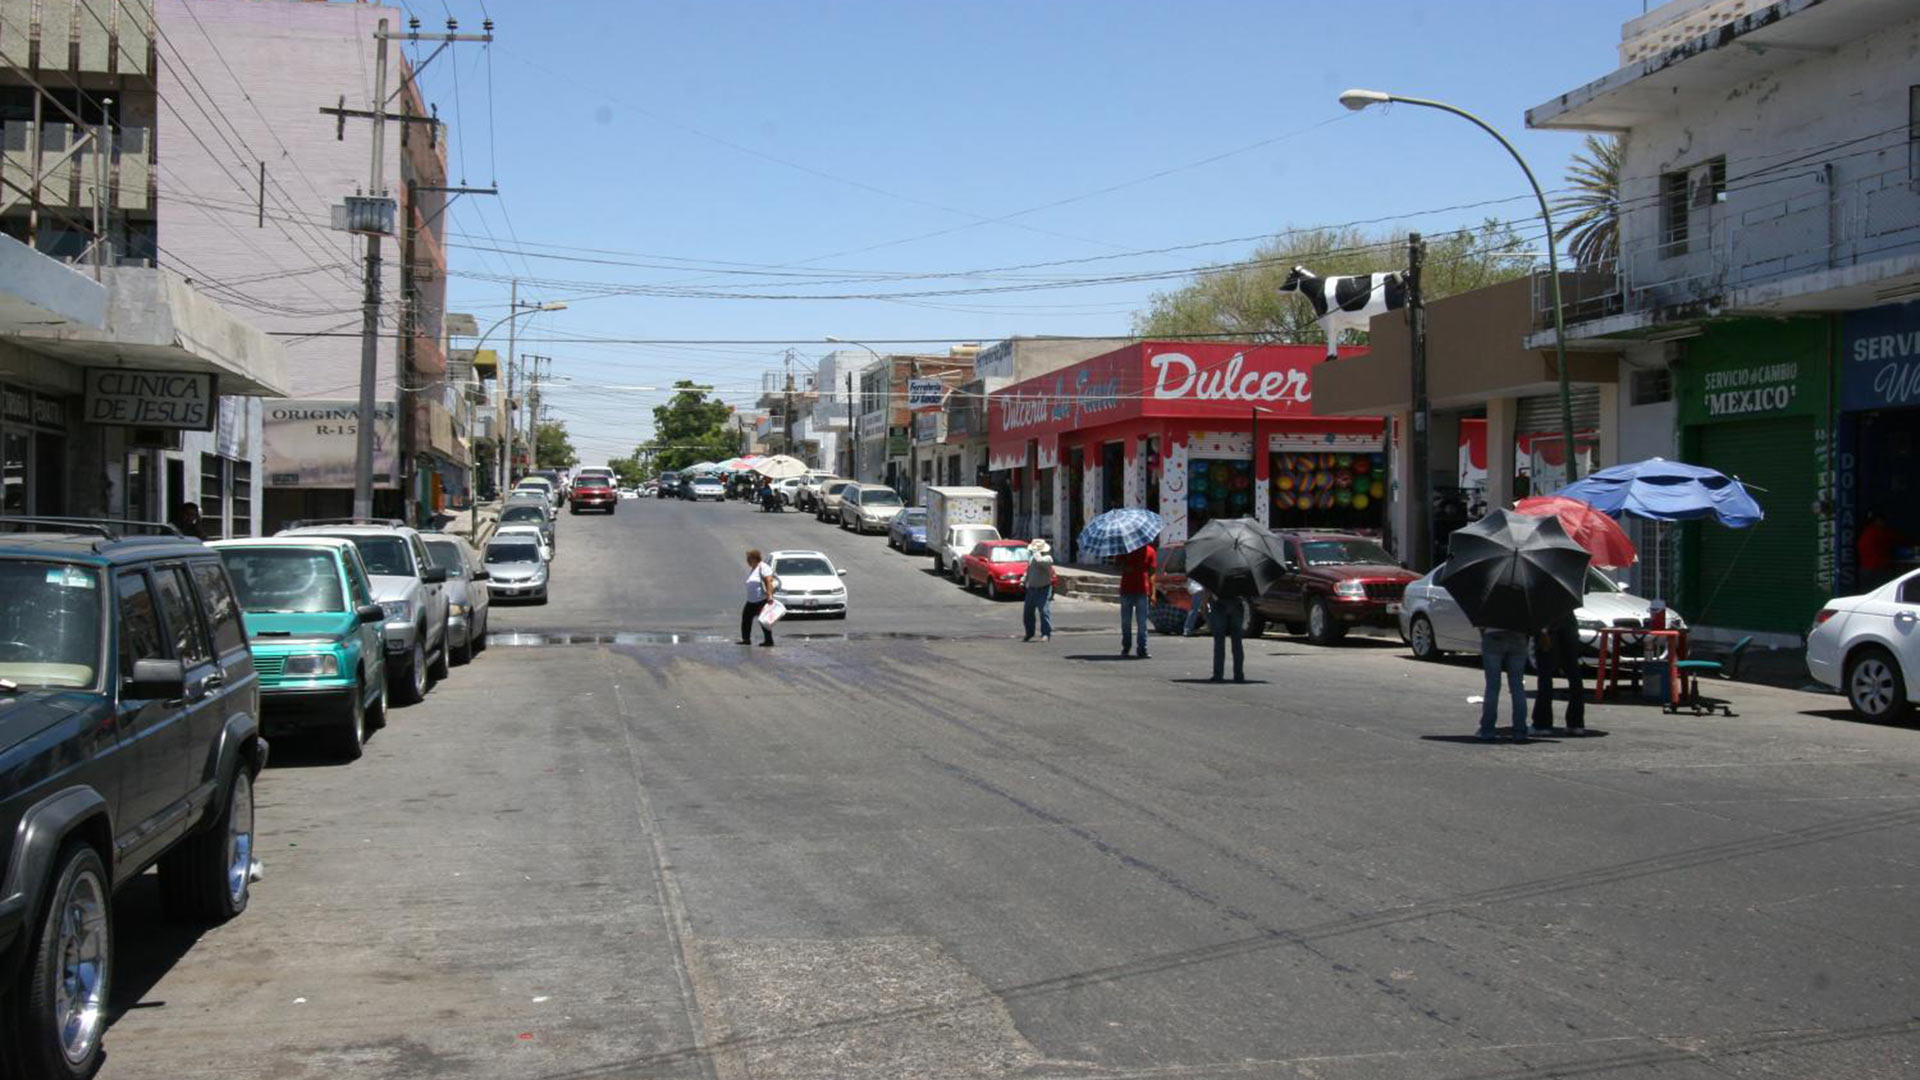 Sinaloa is one of five states in Mexico that has been classified under the most dangerous ranking.